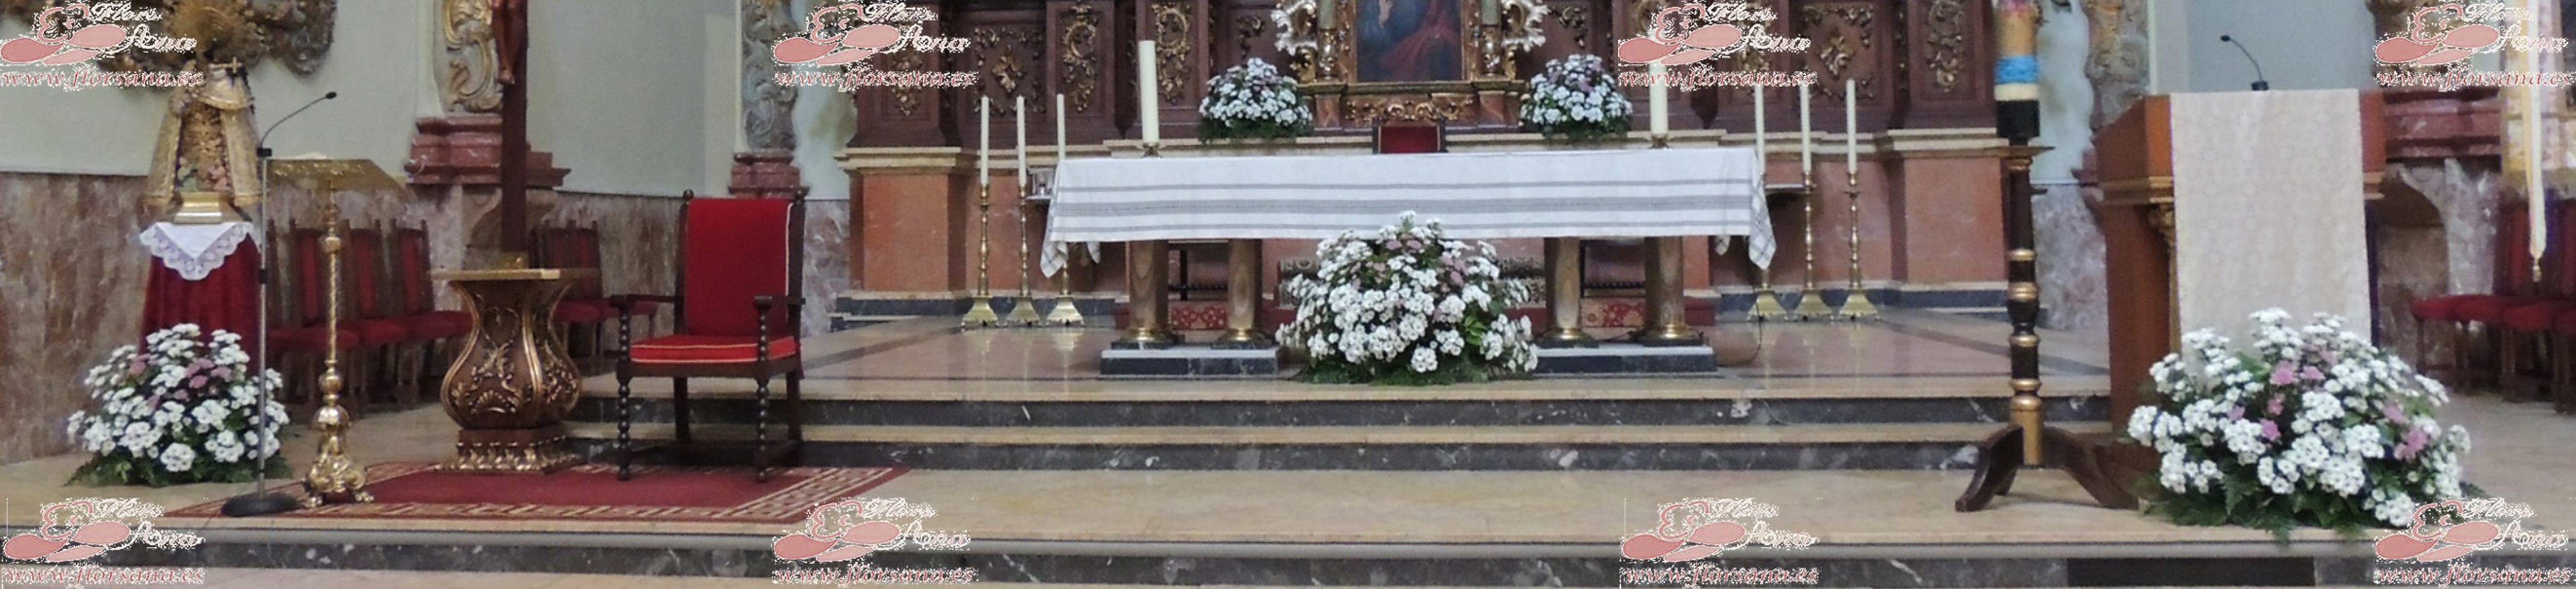 Church altar 3 flors ana carcaixent spain for Altar decoration for first holy communion